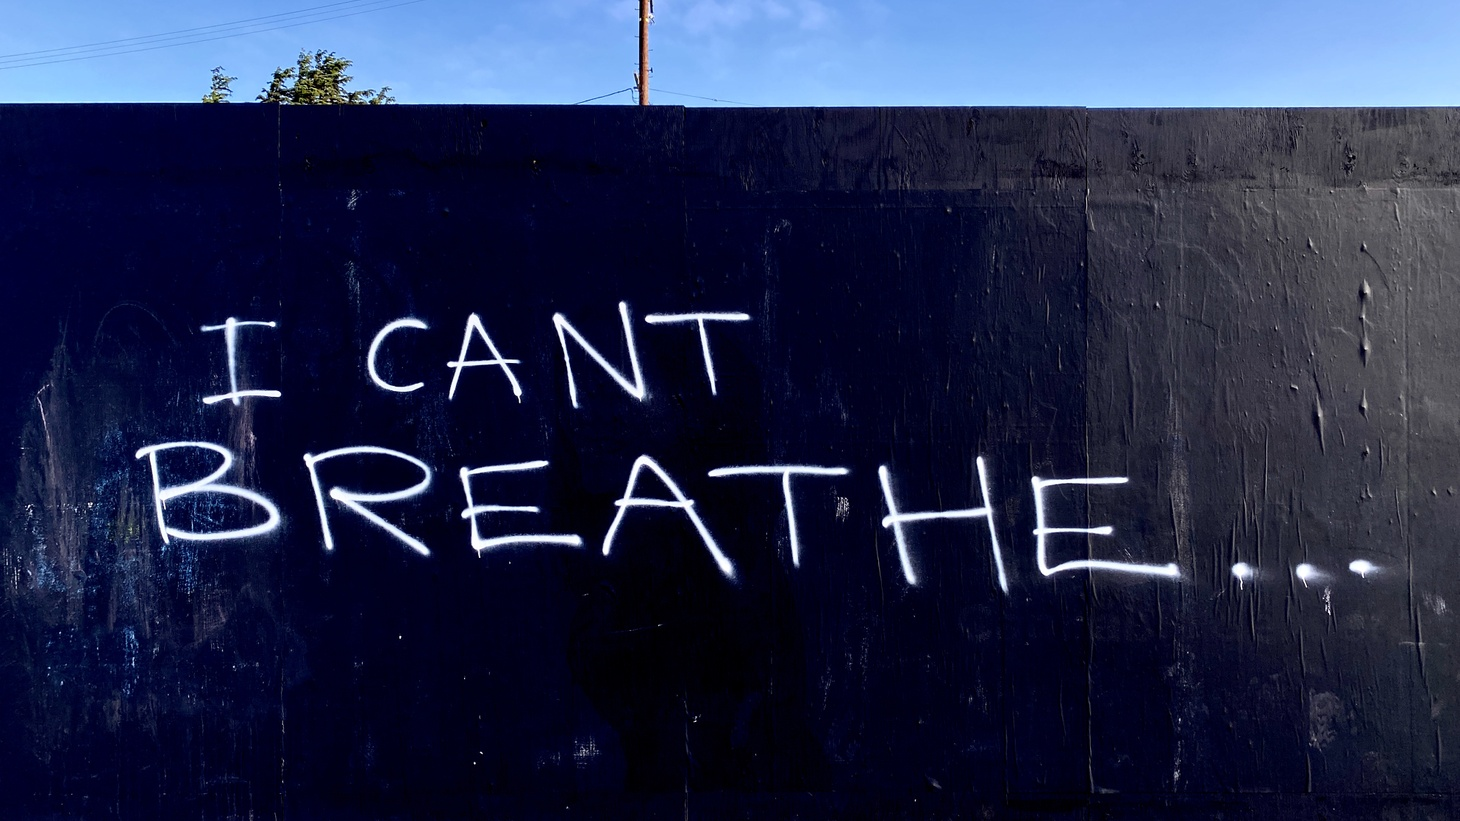 """A wall in Mar Vista, Los Angeles, is spray painted with the words """"I can't breathe,"""" May 30, 2020. Recently, an English teacher at El Camino Real Charter High School in Woodland Hills wore a t-shirt that said """"I can't breathe,"""" then got complaints about it from a father of one of her students. Threats on social media followed."""